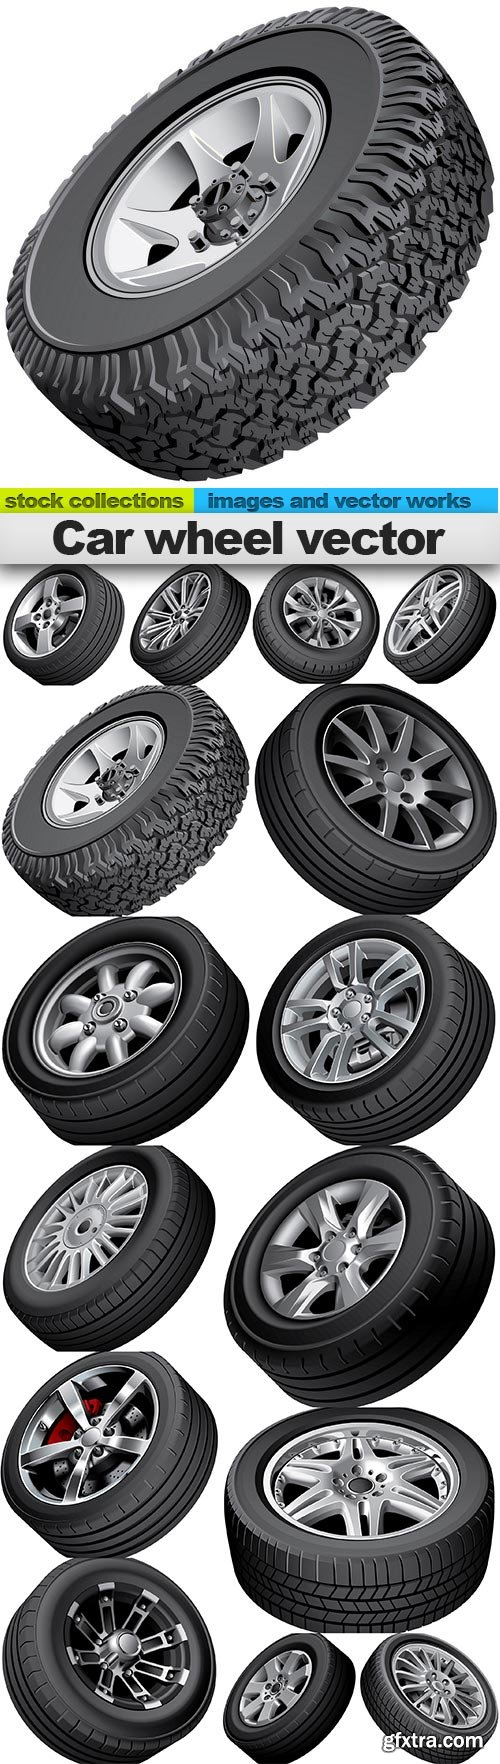 Car wheel vector, 15 x EPS